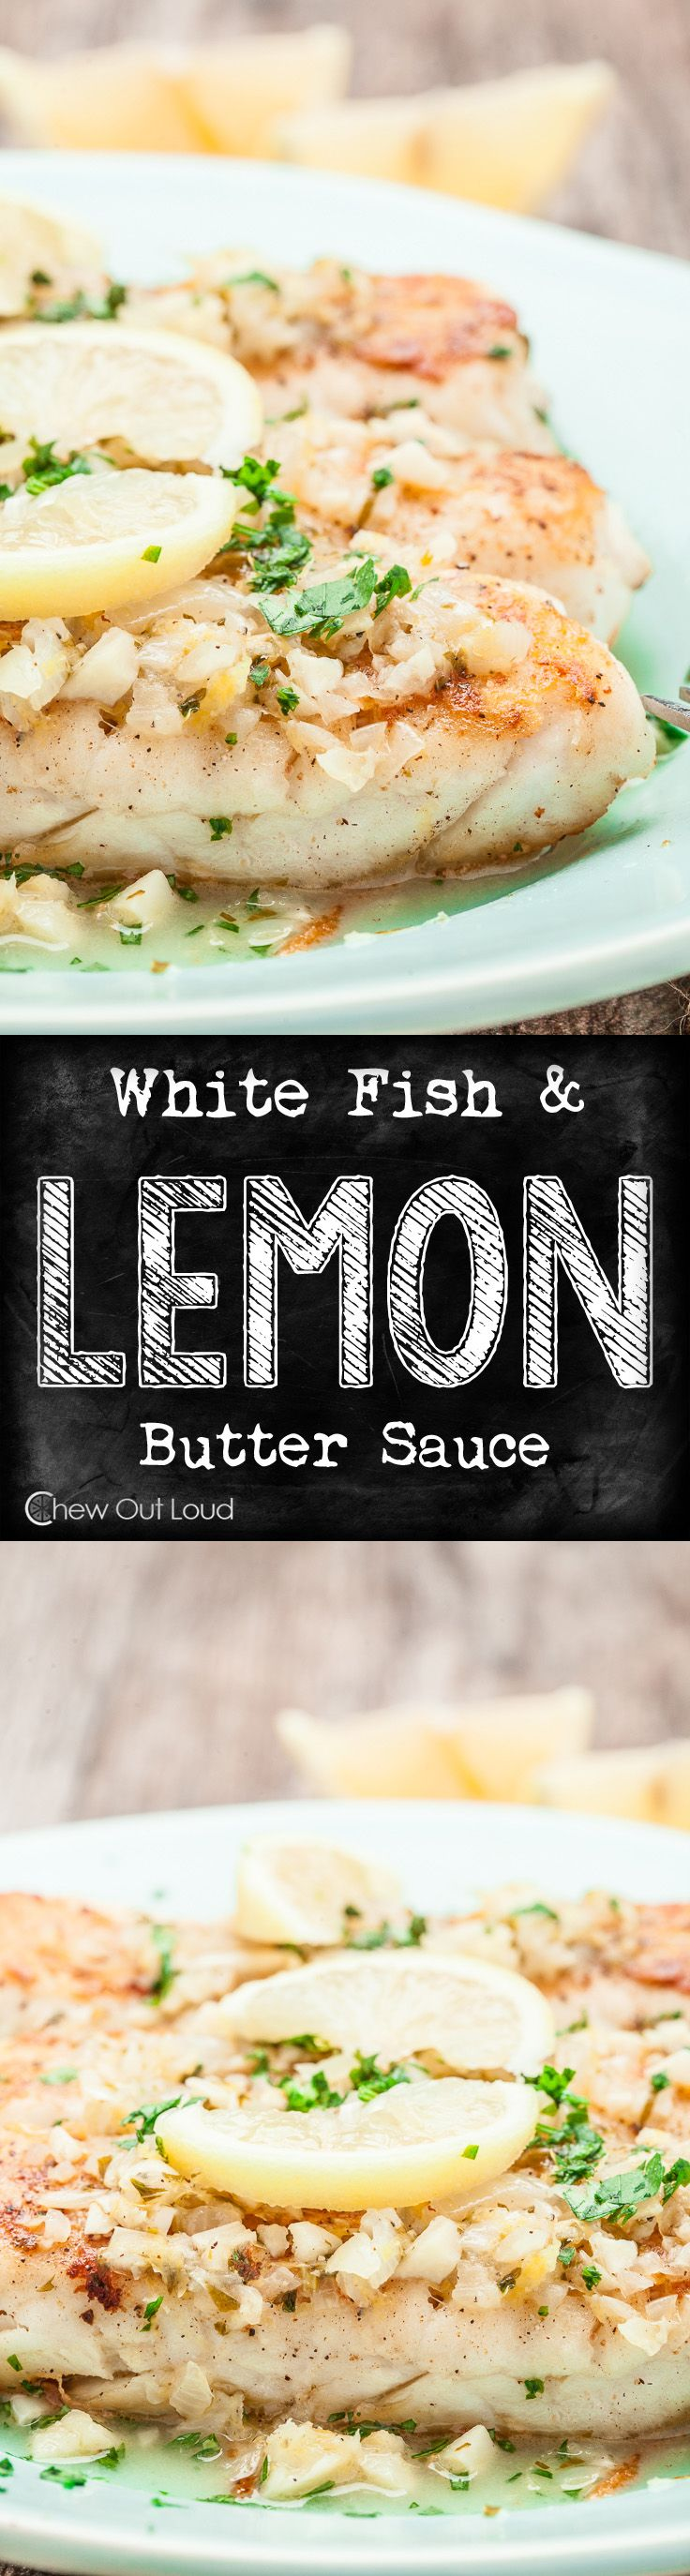 17 best ideas about fish on pinterest unique mermaid for What fish is healthy to eat